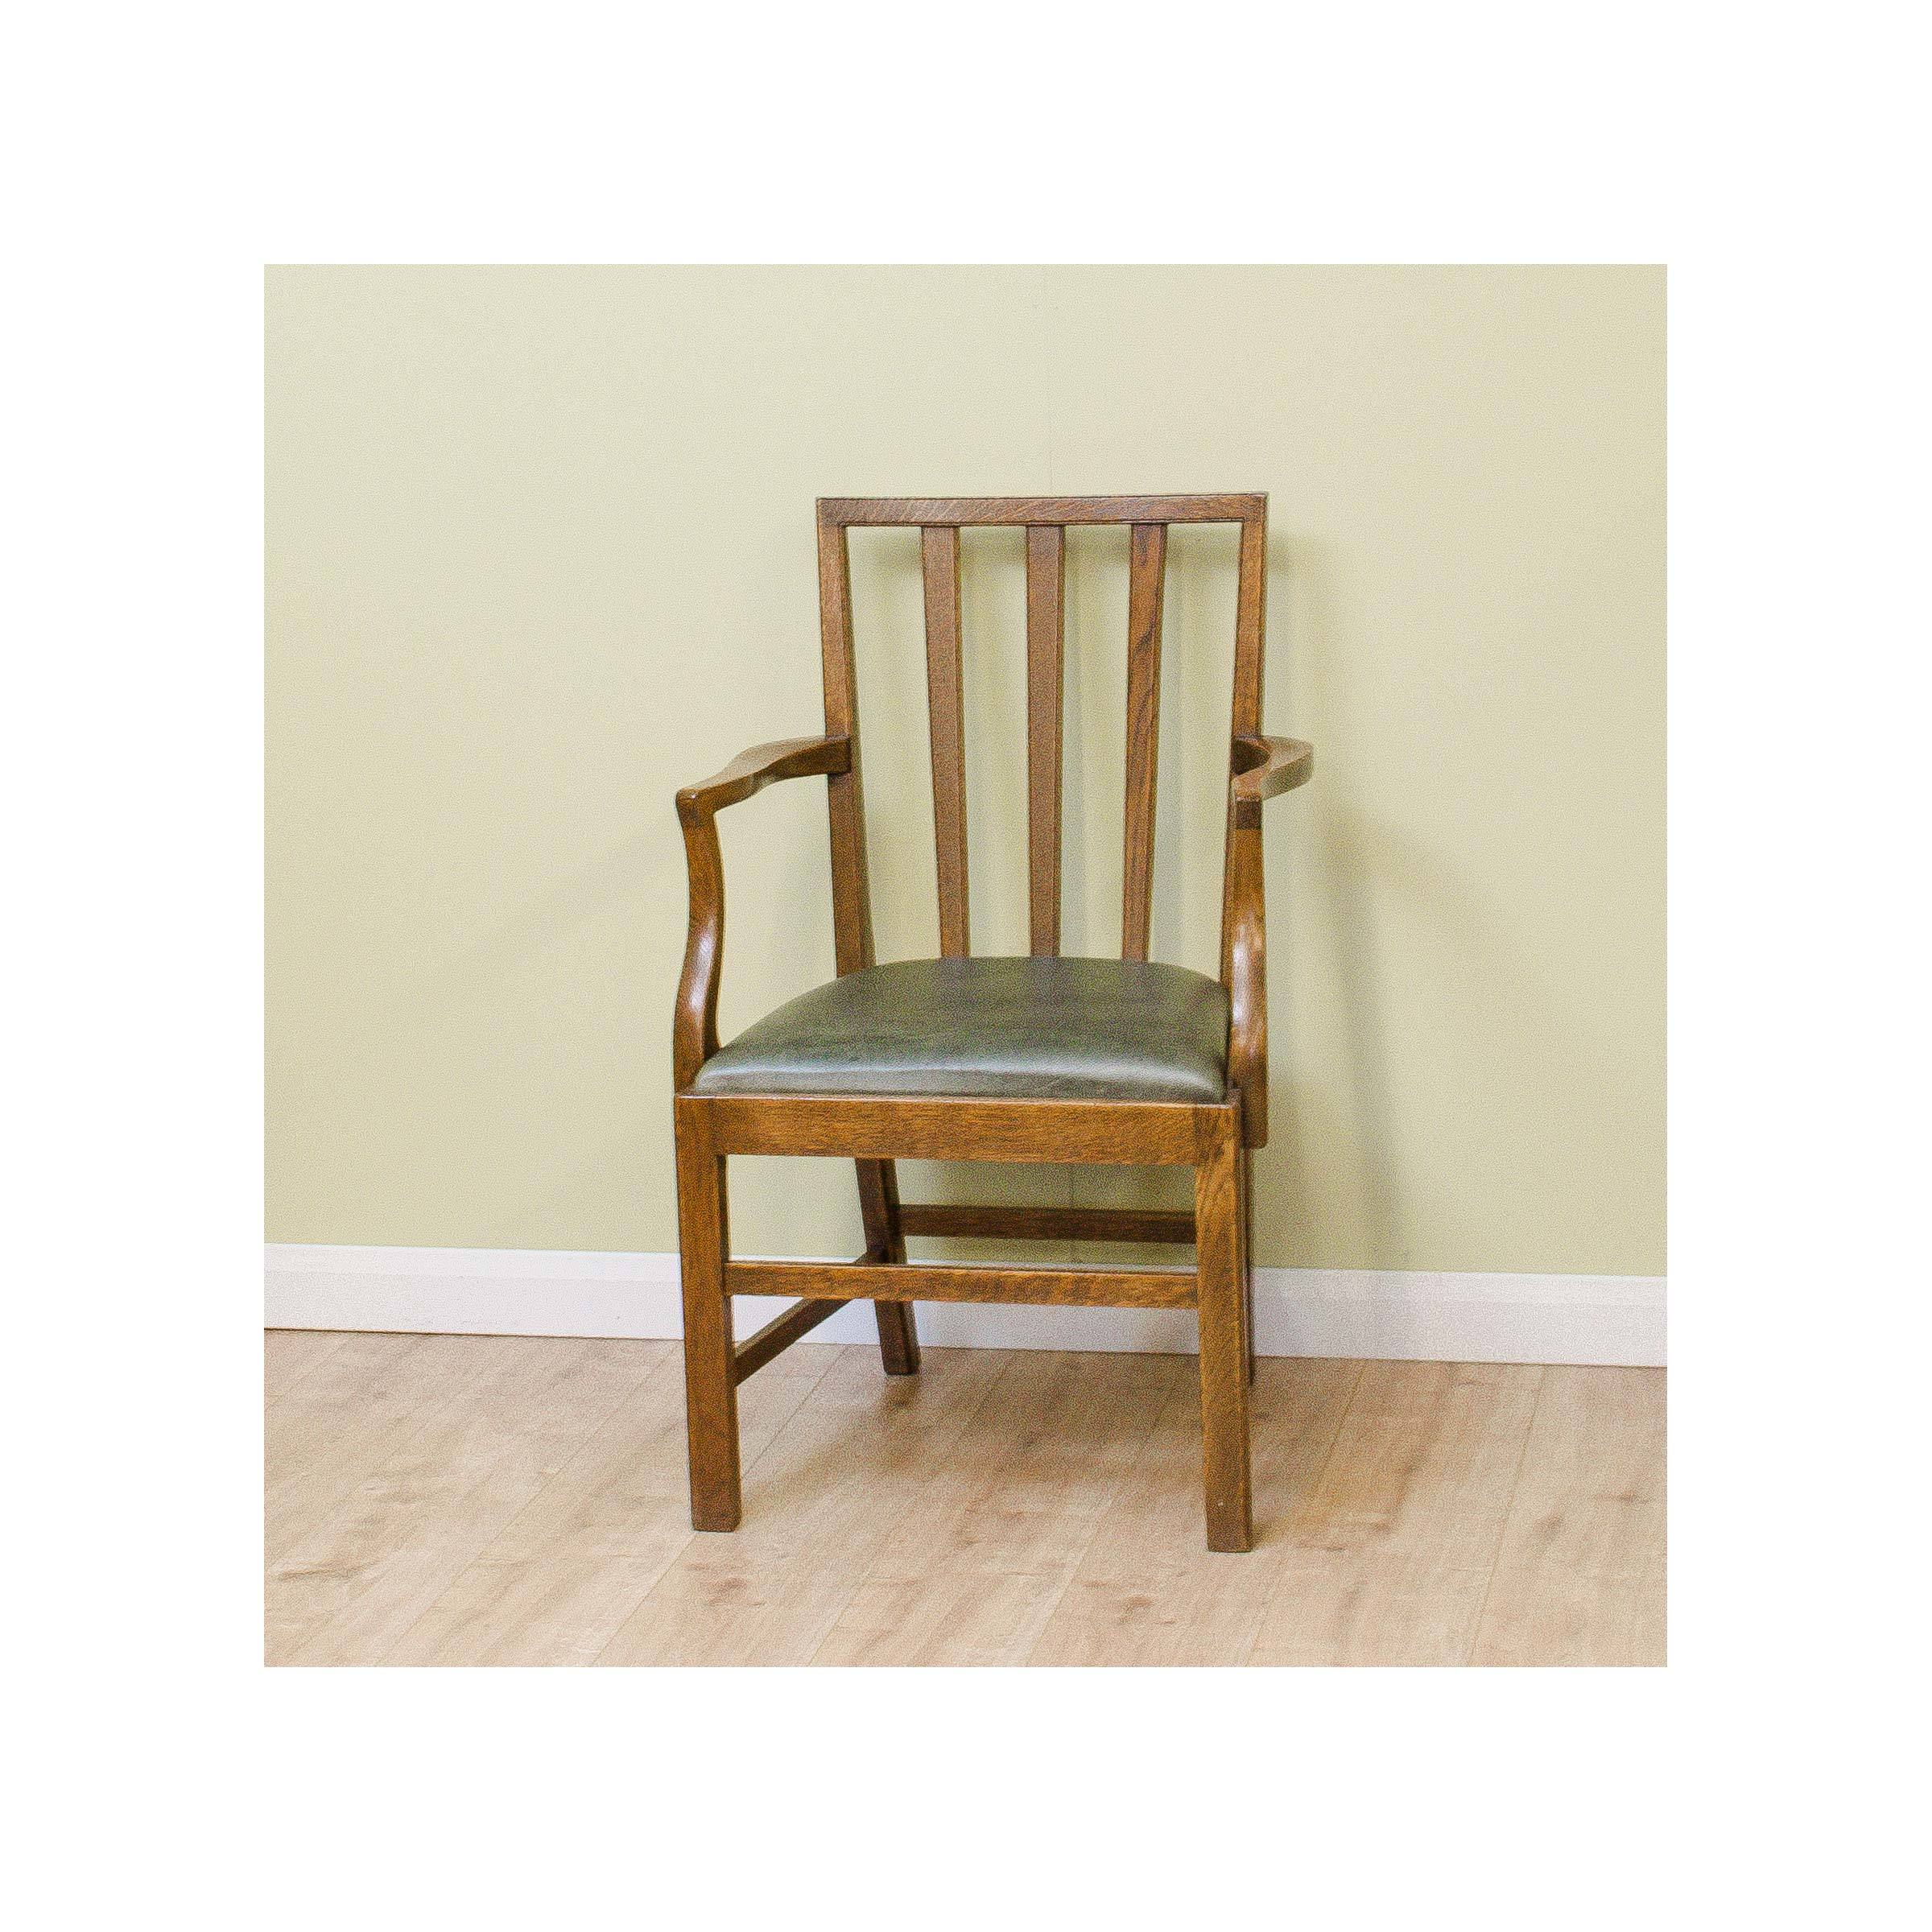 arts-and-crafts-oak-and-leather-comb-back-chair-by-joseph-johnston-b0020045a.jpg